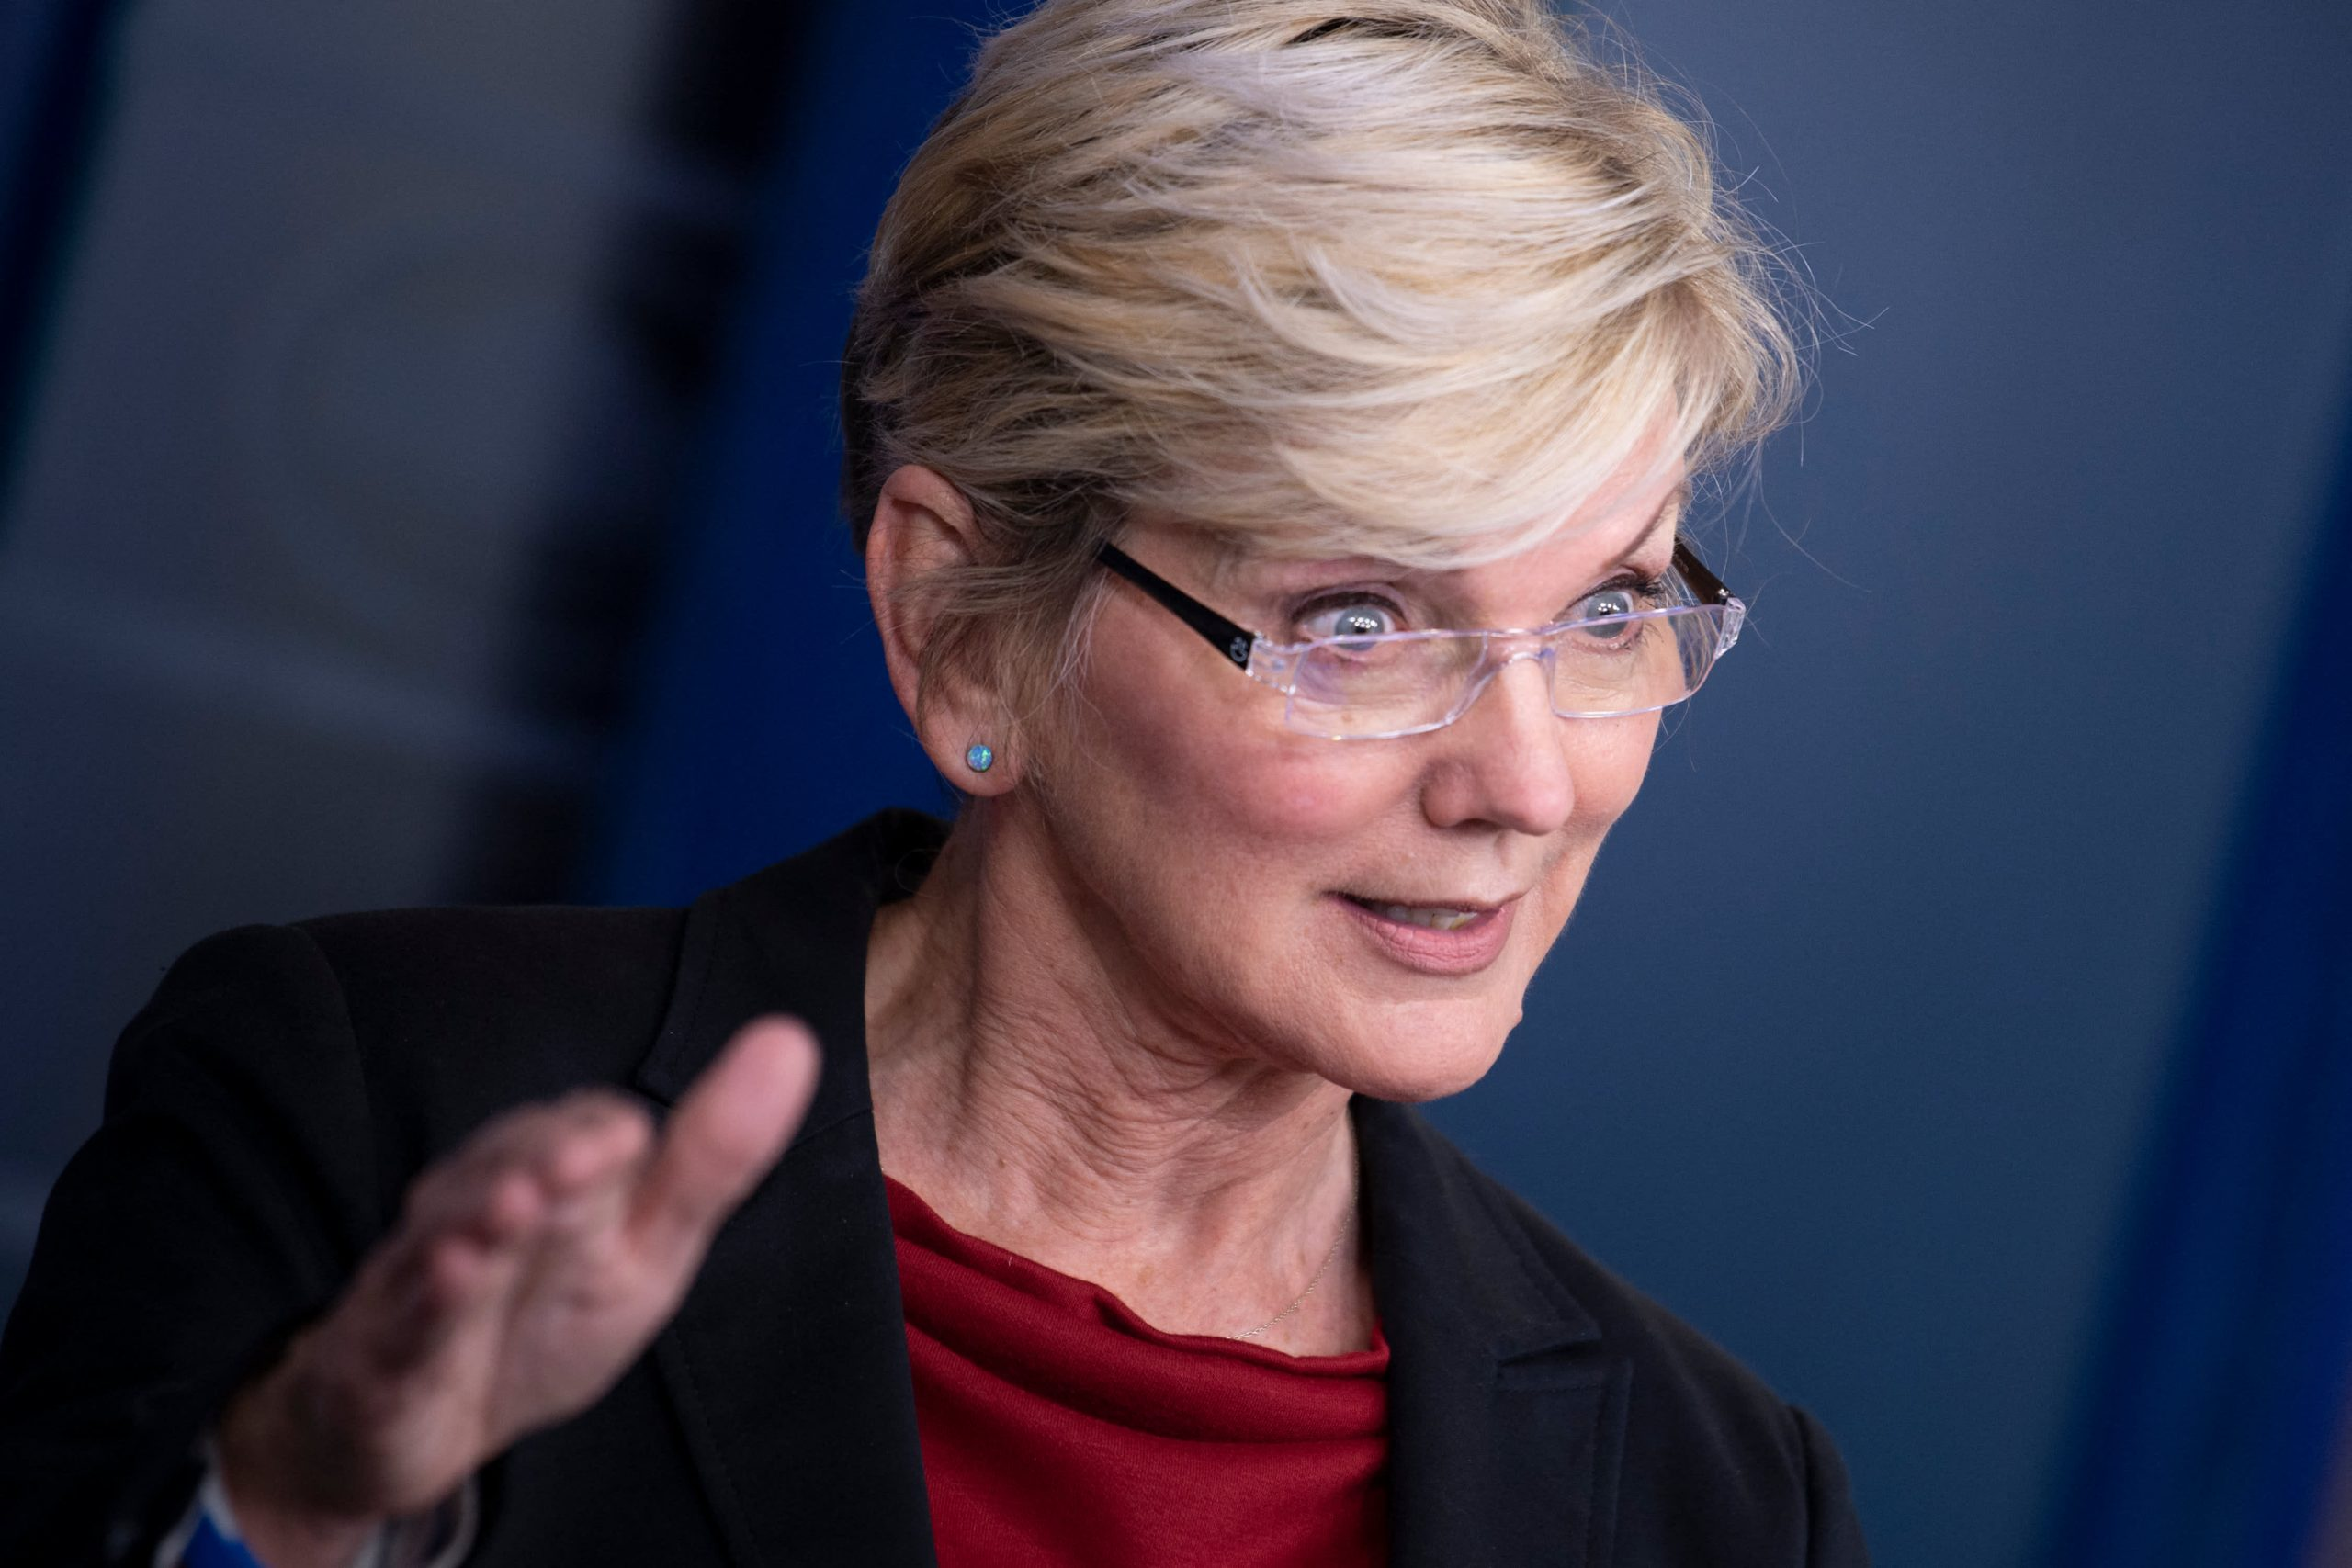 'This is our generation's moonshot,' Energy Secretary Granholm says of fighting climate change